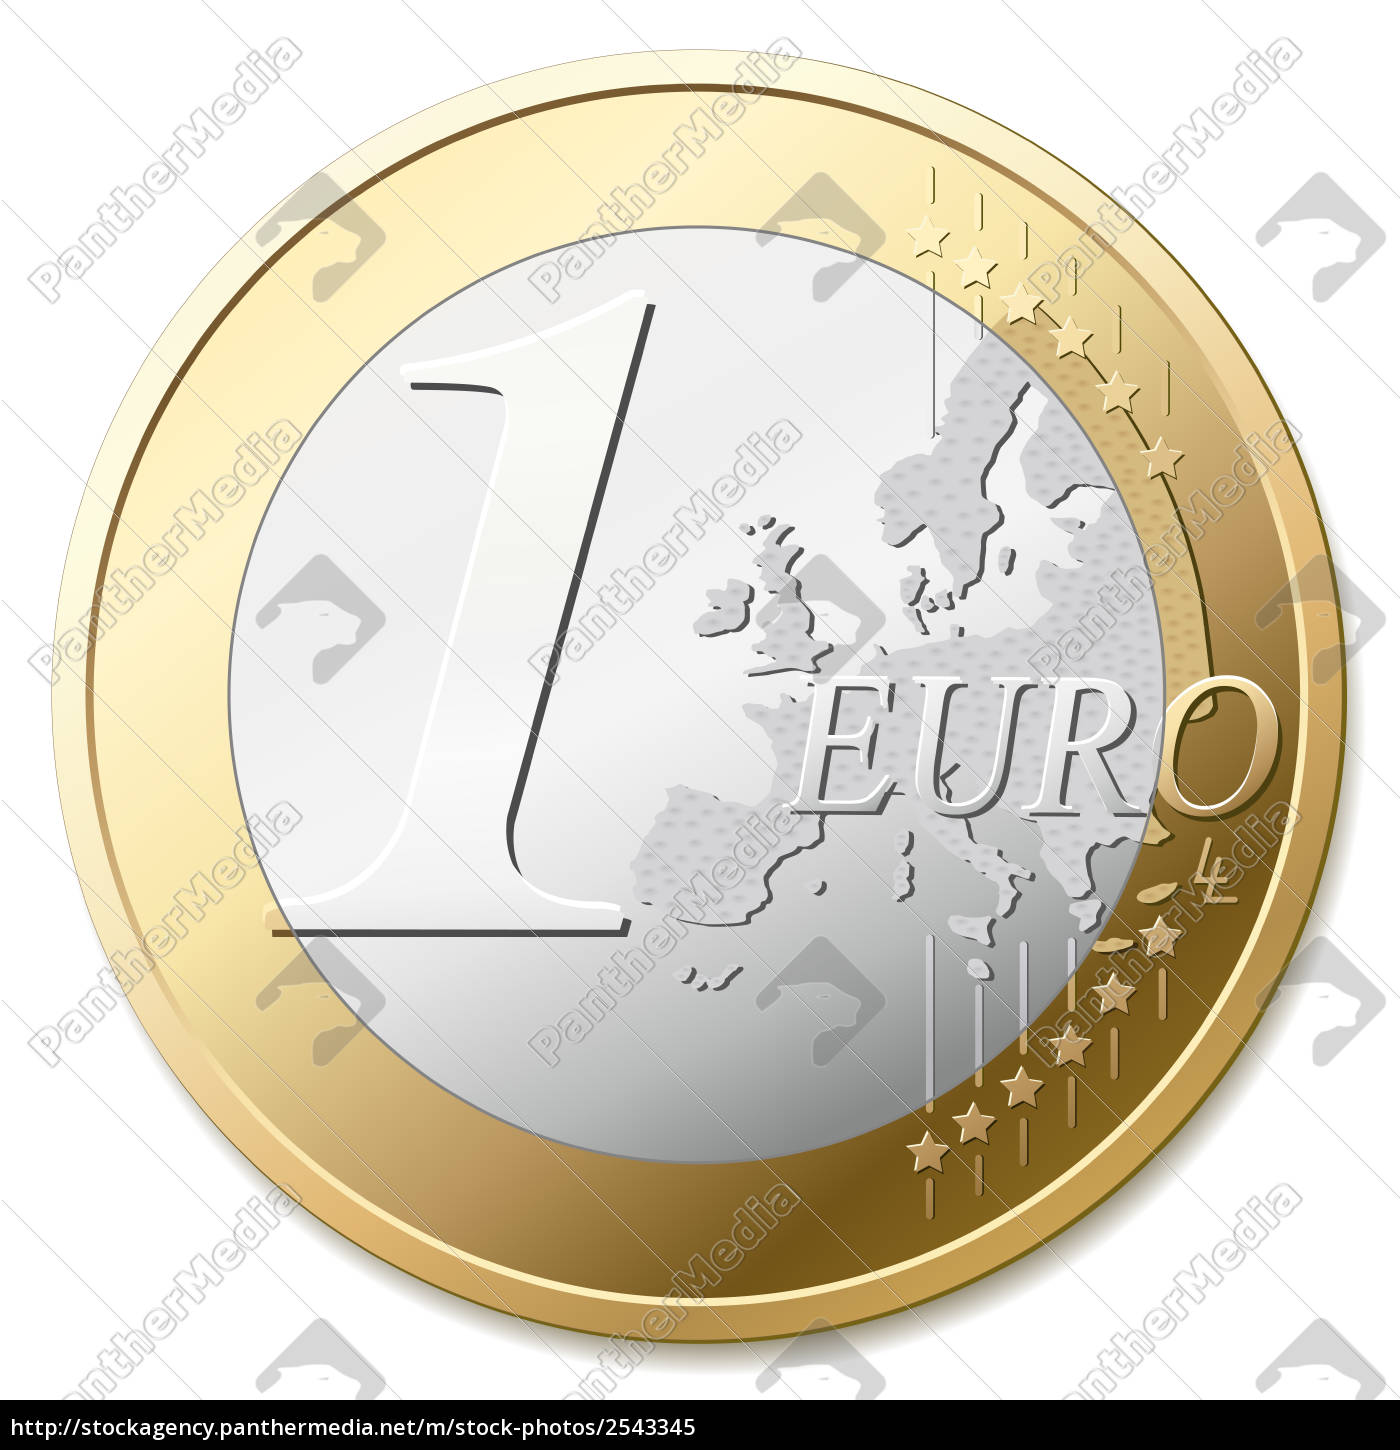 Business, Economy, Money, White, Europe, Symbol - 2543345